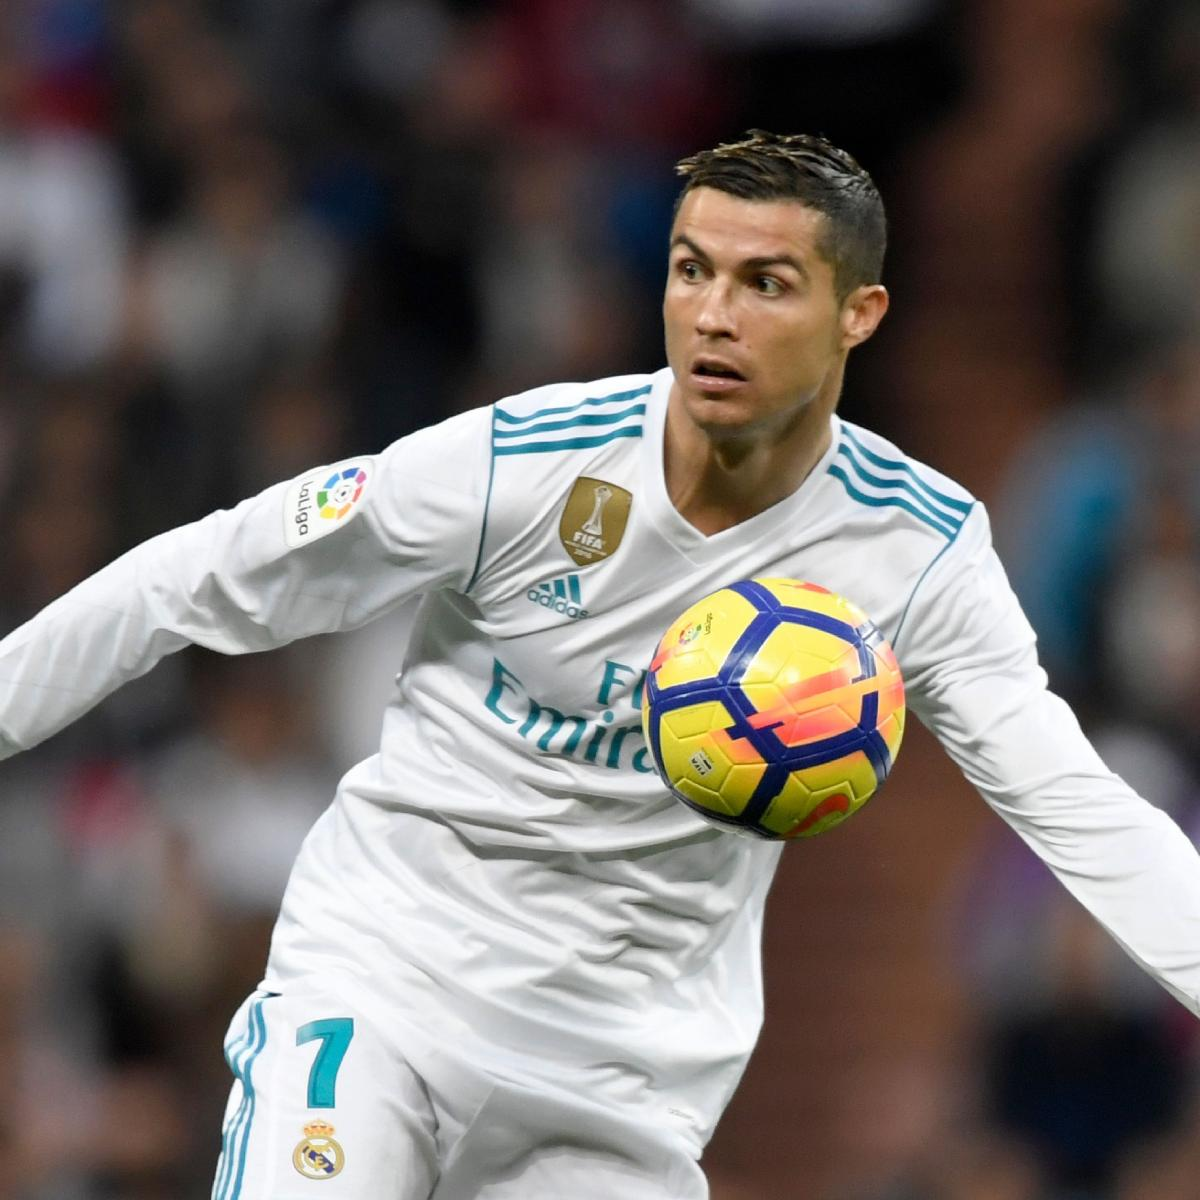 Cristiano Ronaldo S 4 Goals Lead Real Madrid To Win Vs: Cristiano Ronaldo Scores Game-Winning Goal For Real Madrid